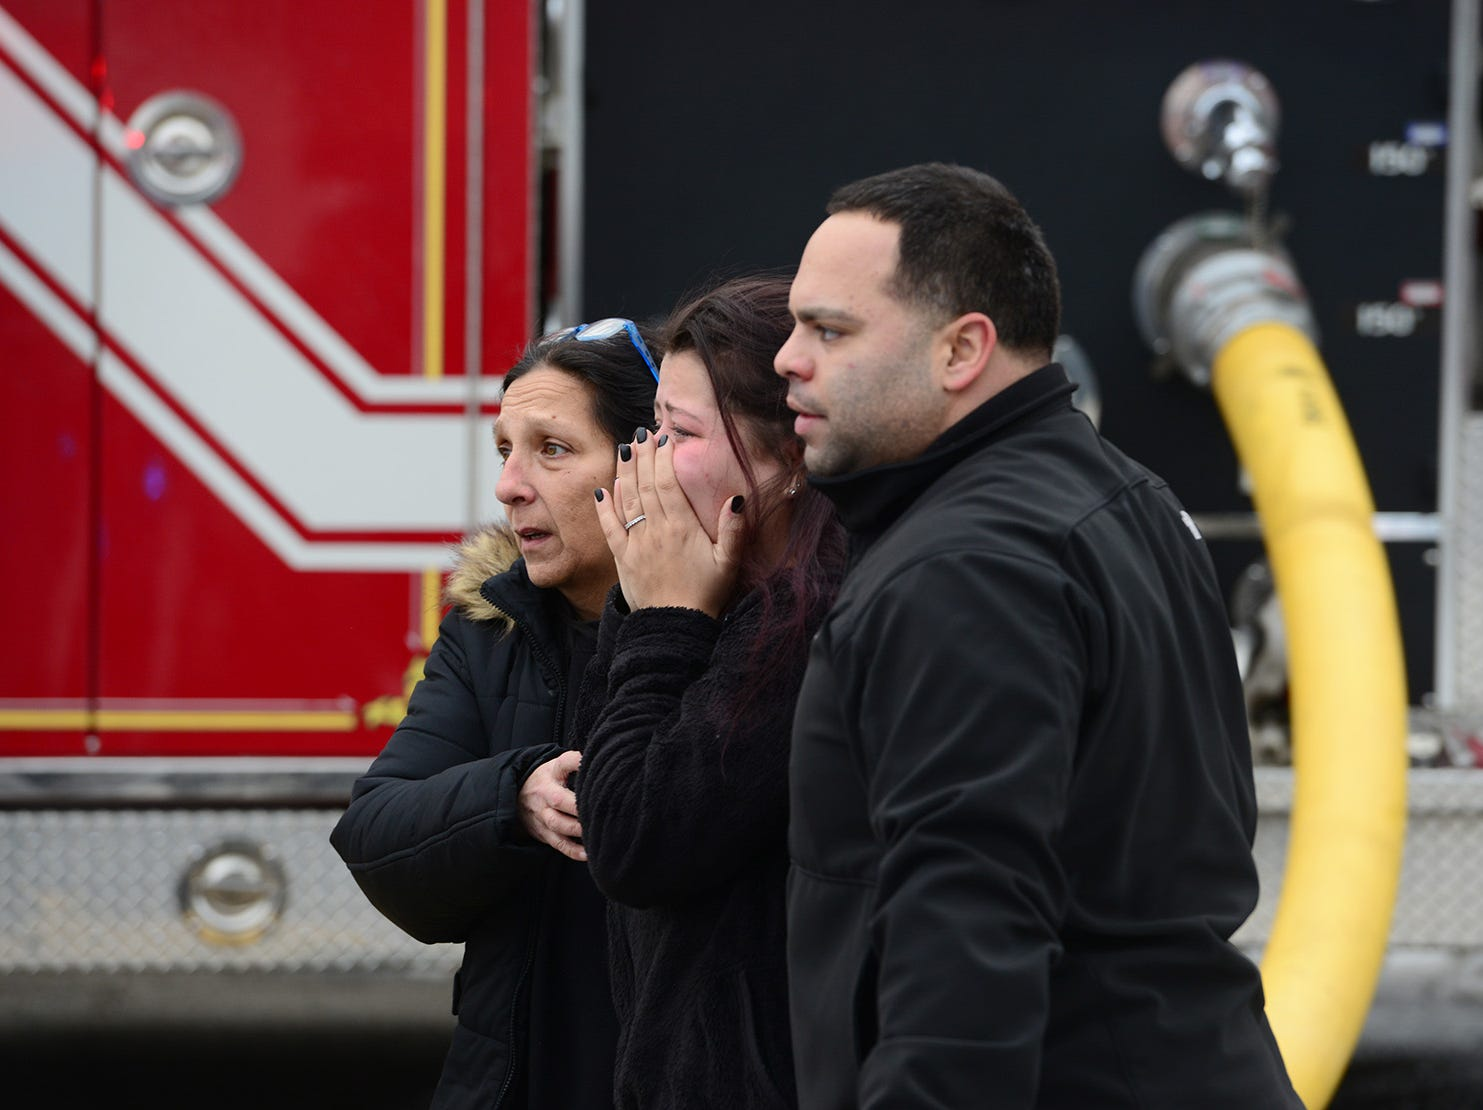 A victim is comforted as she walks away from the fire that gutted a home on Spruce Ave in Saddle Book on Monday February 19, 2018.